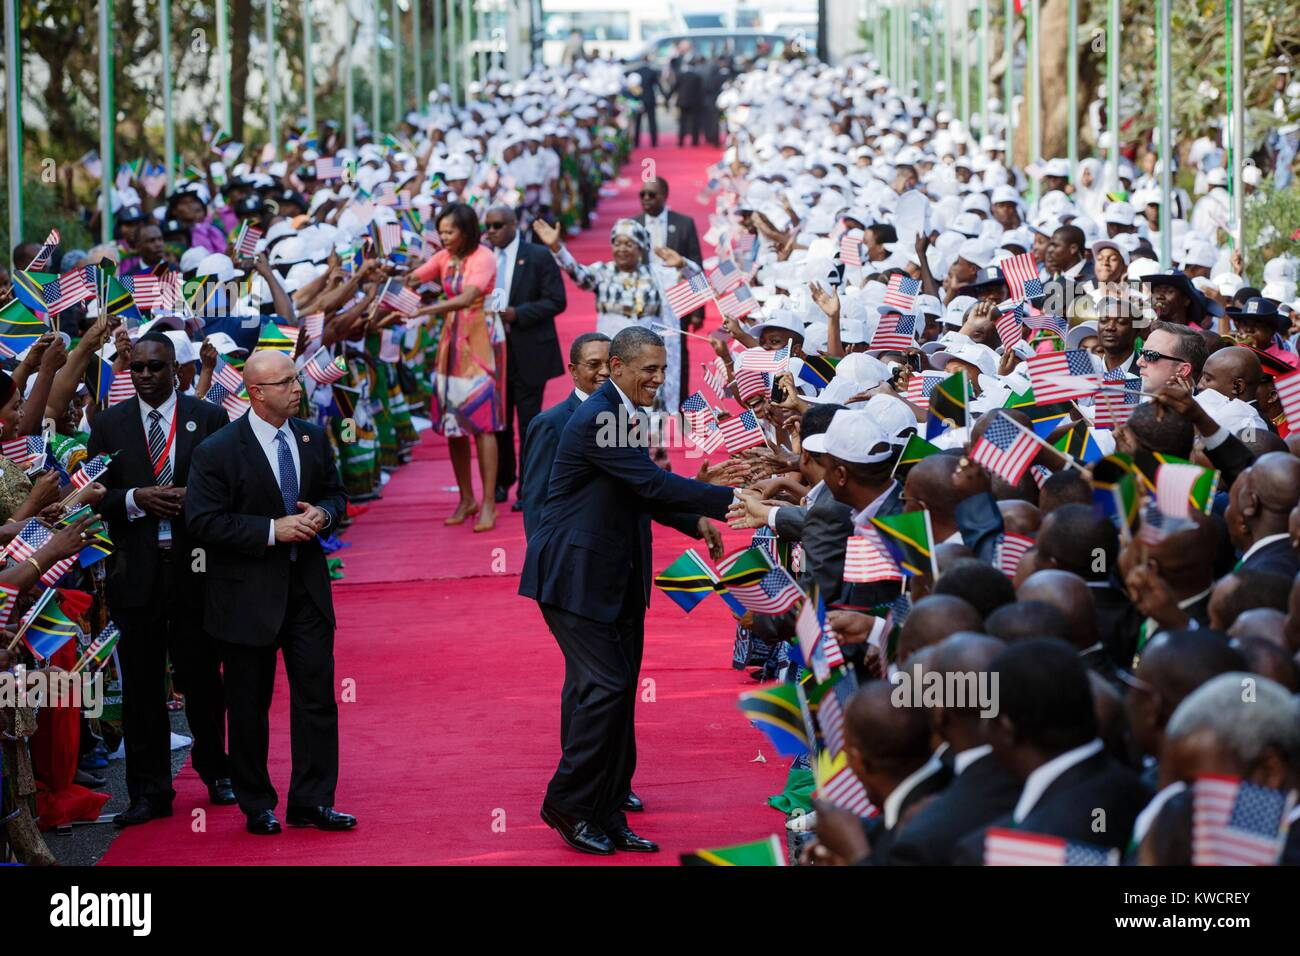 President Barack Obama and First Lady Michelle Obama shake hands with the Tanzanian crowd. President Jakaya Kikwete - Stock Image